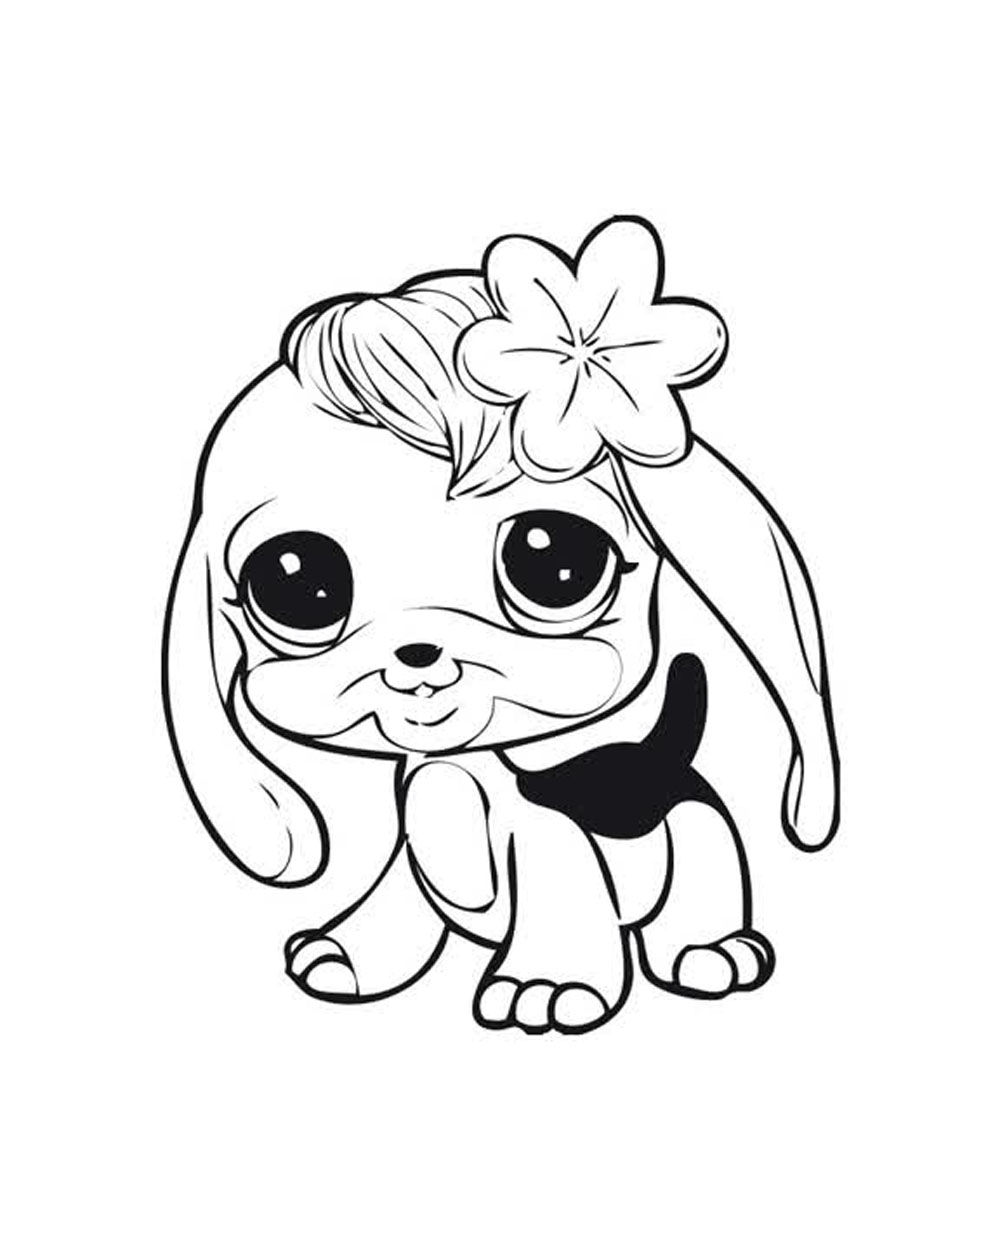 free littlest pet shop coloring pages - Littlest Pet Shop Coloring Page